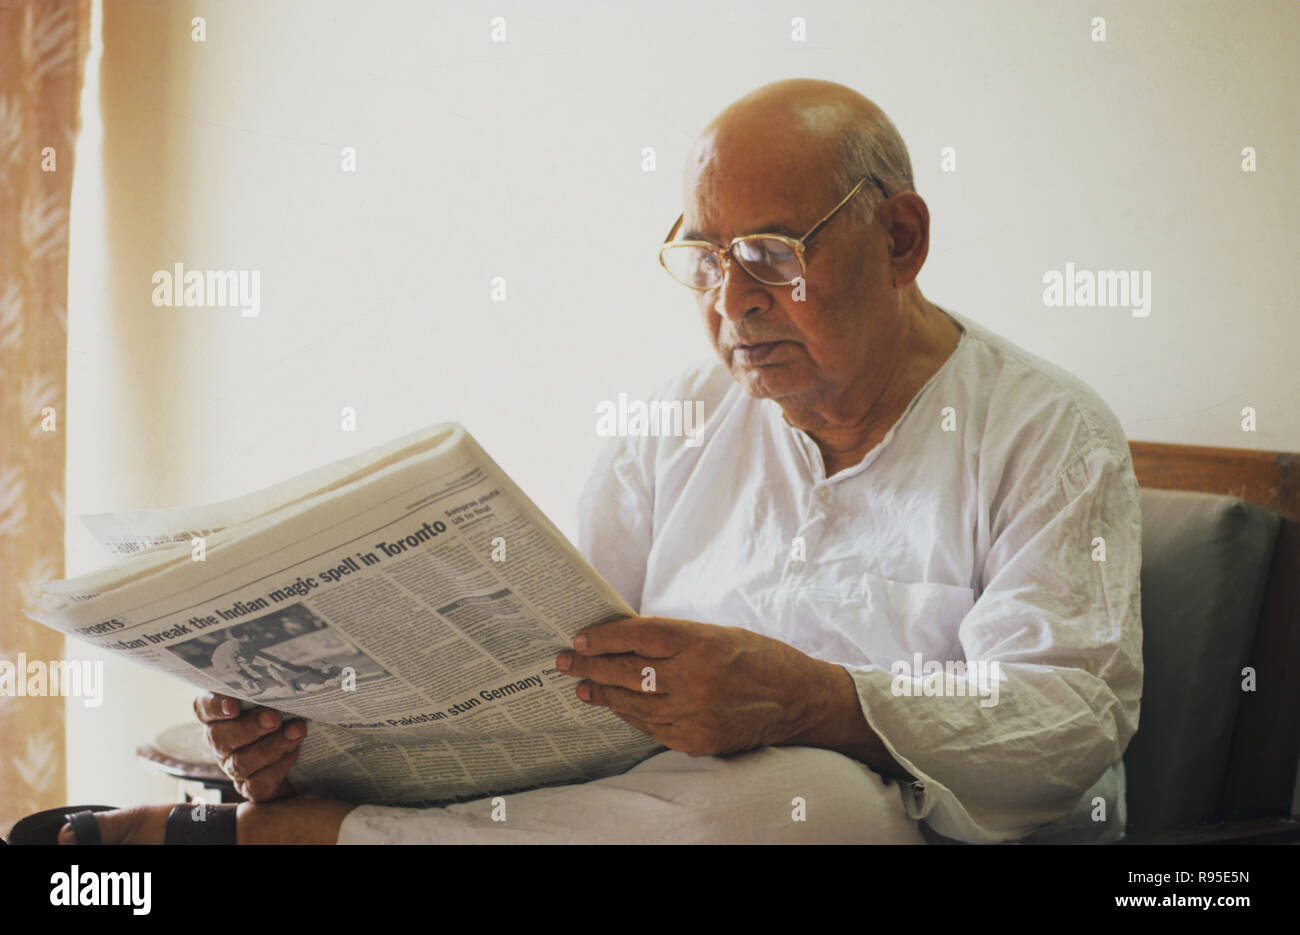 man reading news paper, NO MR - Stock Image